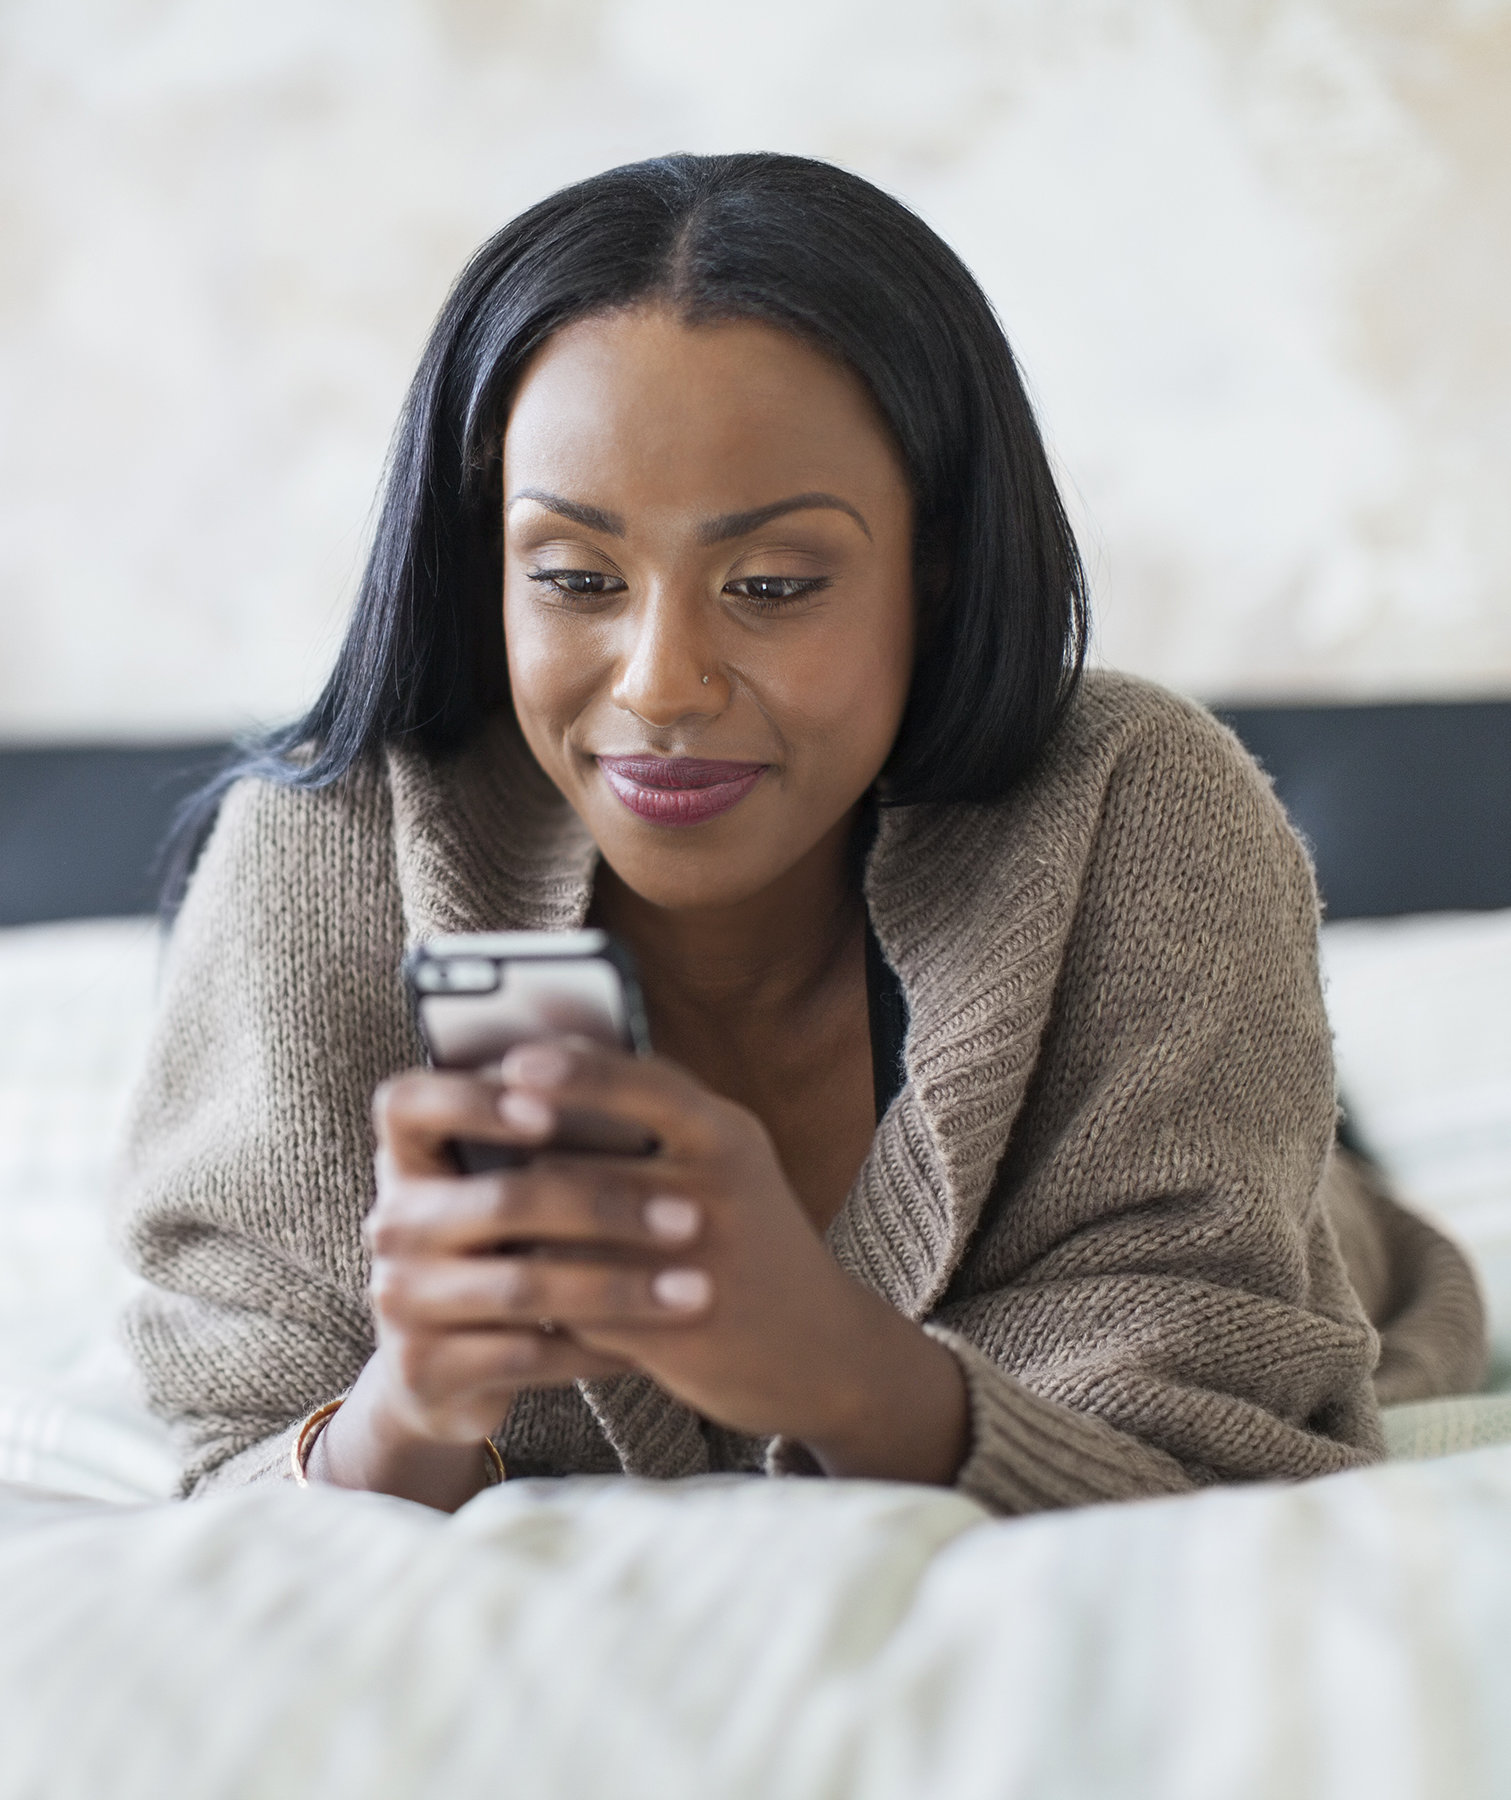 woman-texting-bed